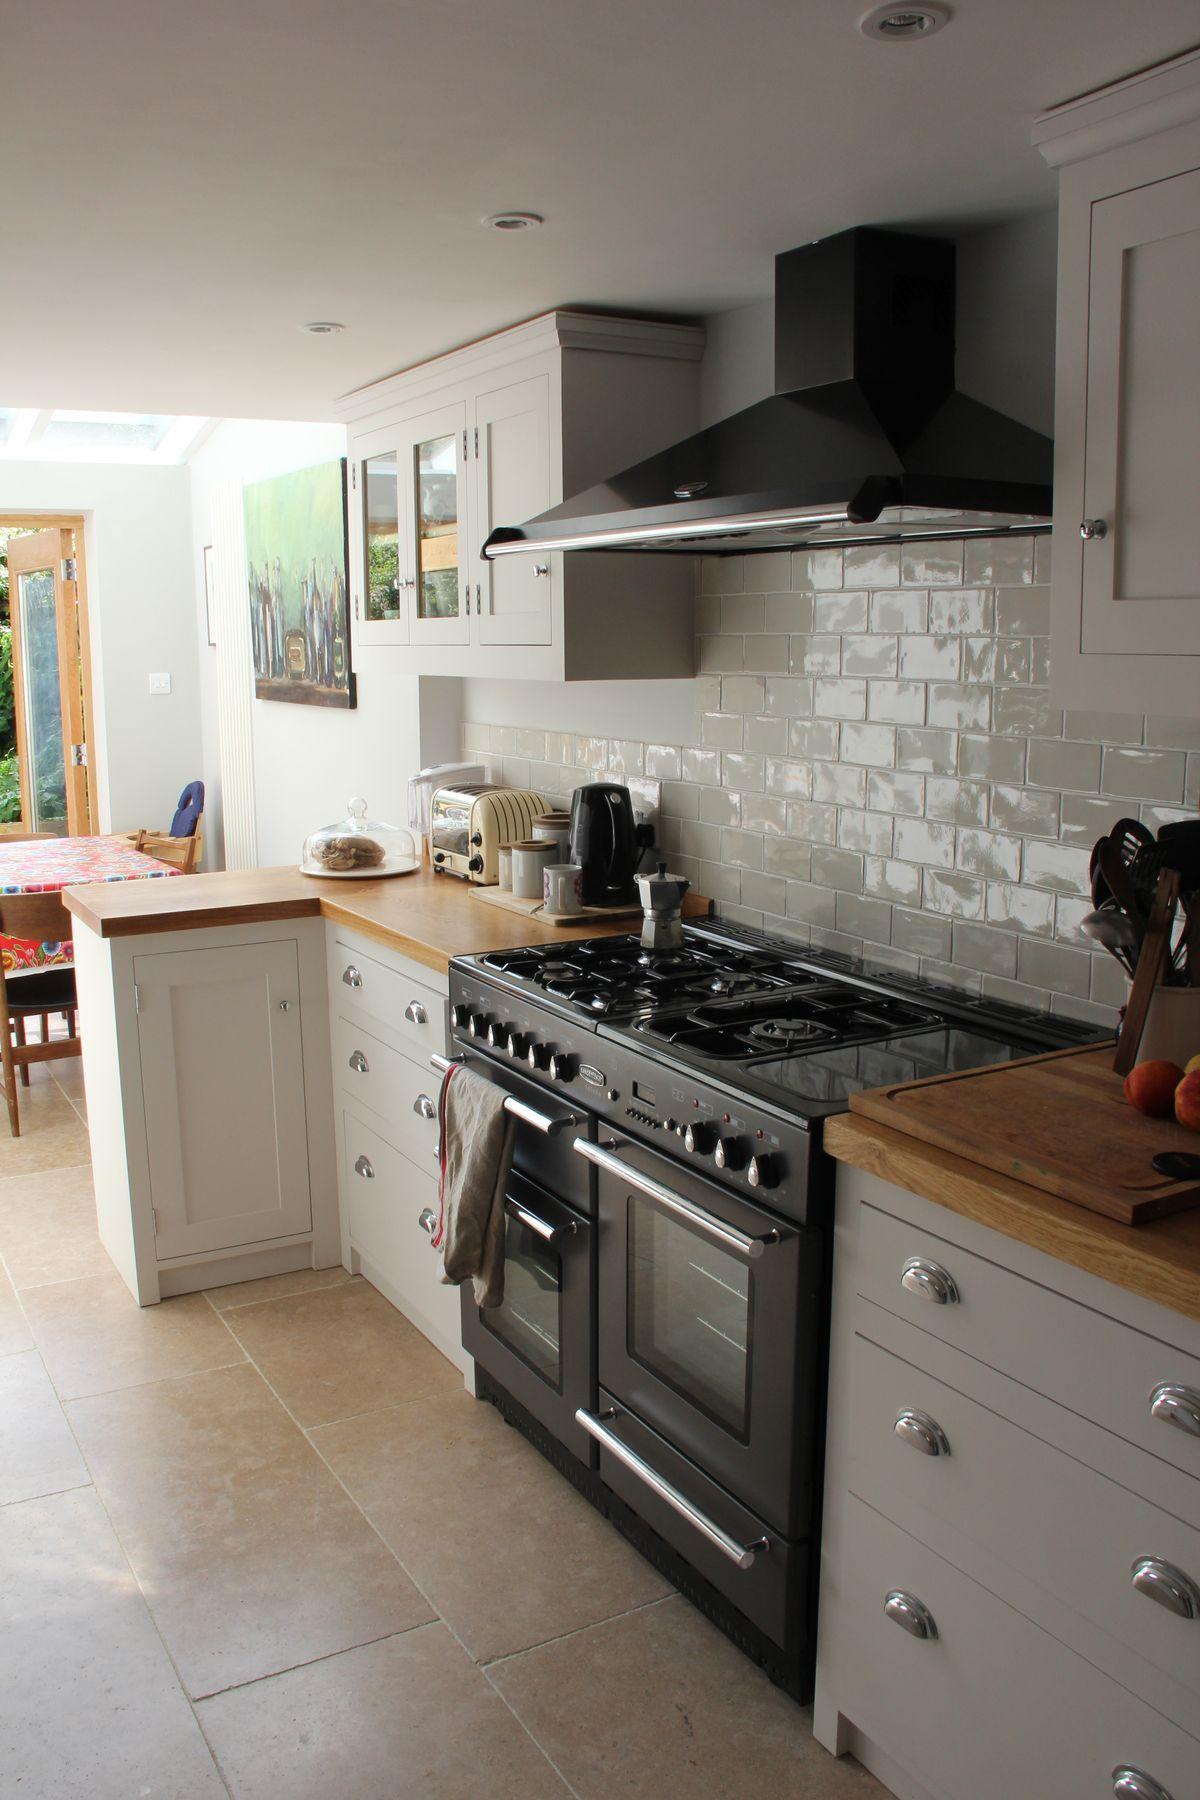 Pin By Mee Hing Lok On Lovely Home Kitchen Kitchen Tiles